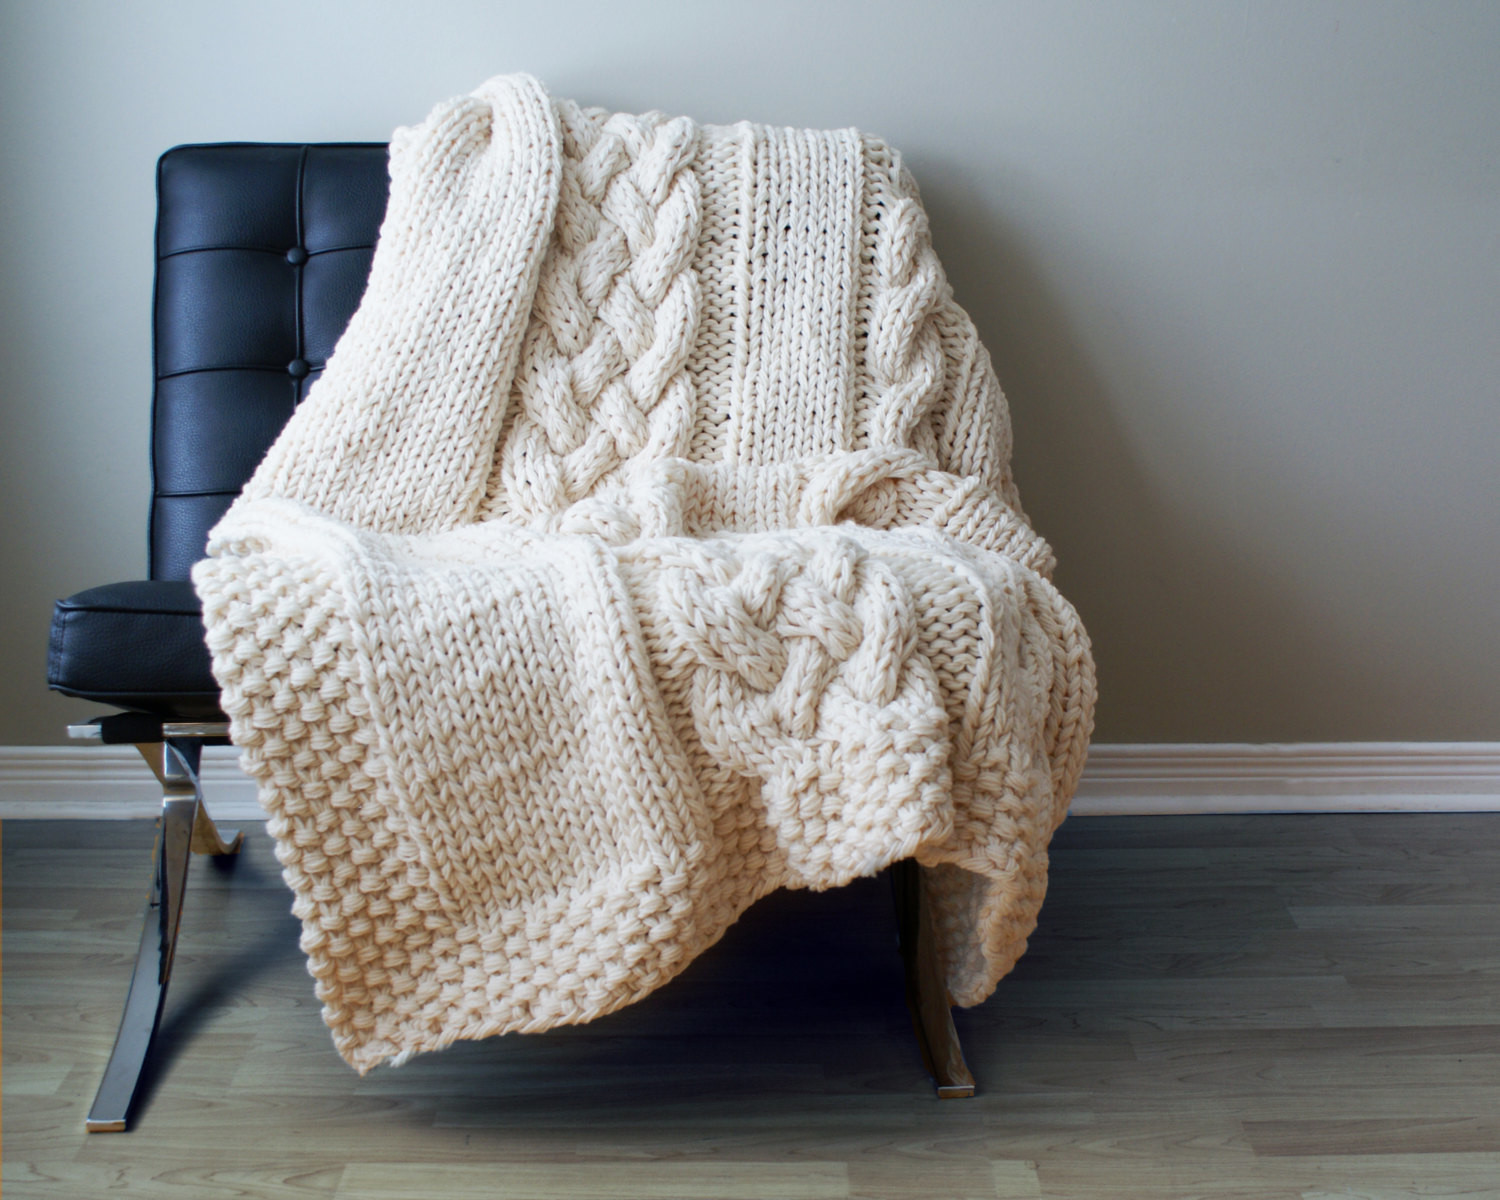 Throw blanket reading chair